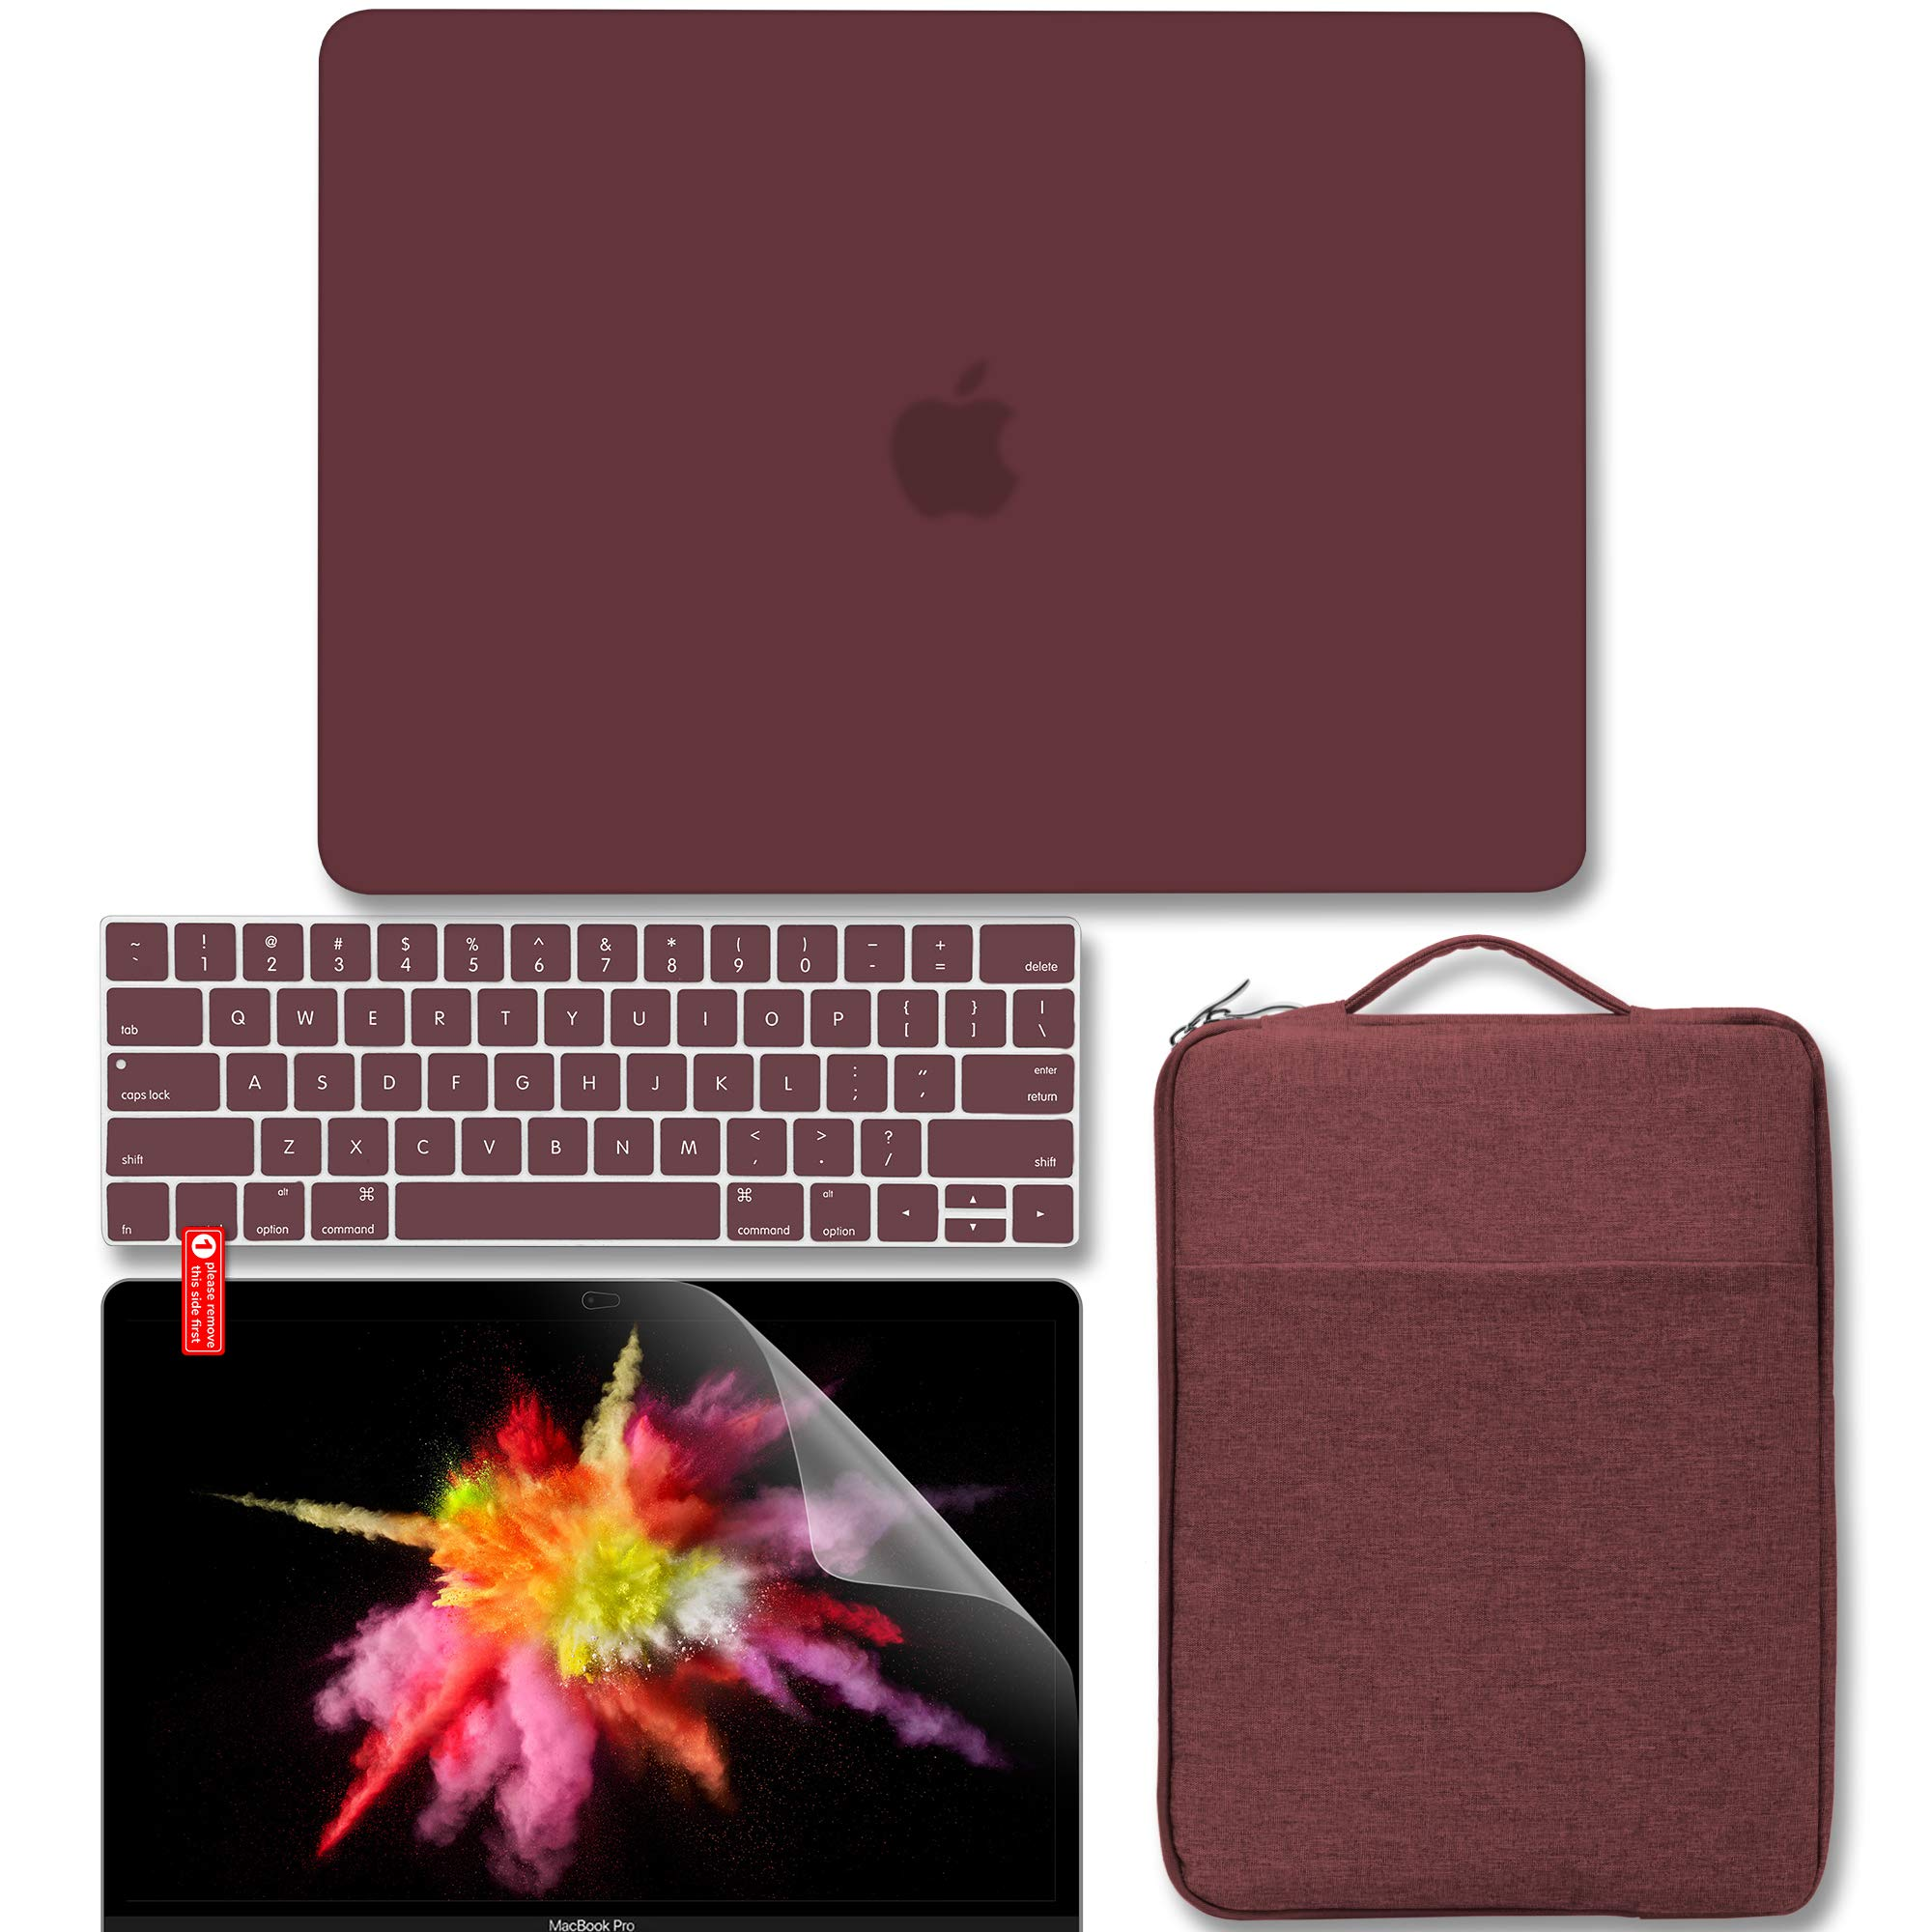 GMYLE MacBook Pro 13 inch Case 2018 2017 2016 Release A1989/A1706/A1708, Plastic Matte Hard Case, Carrying Sleeve Bag, Keyboard Cover & Screen Protector Compatible Newest Mac Pro 13 Inch, Burgundy